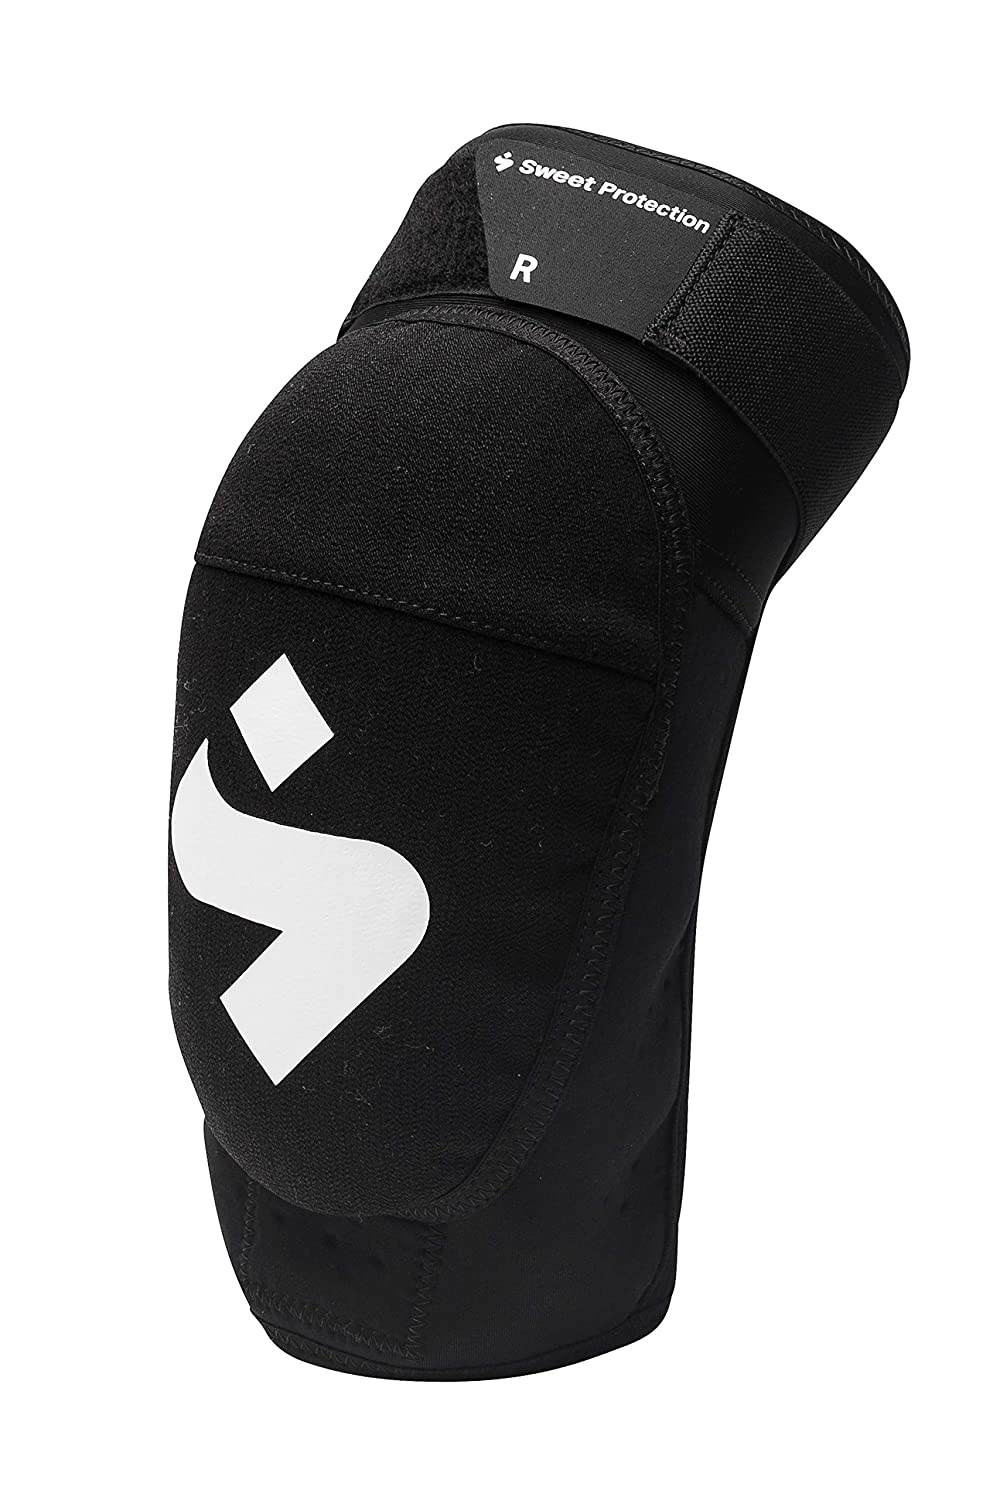 Sweet Protection Knee Pad Black Lowest price challenge M Outlet sale feature